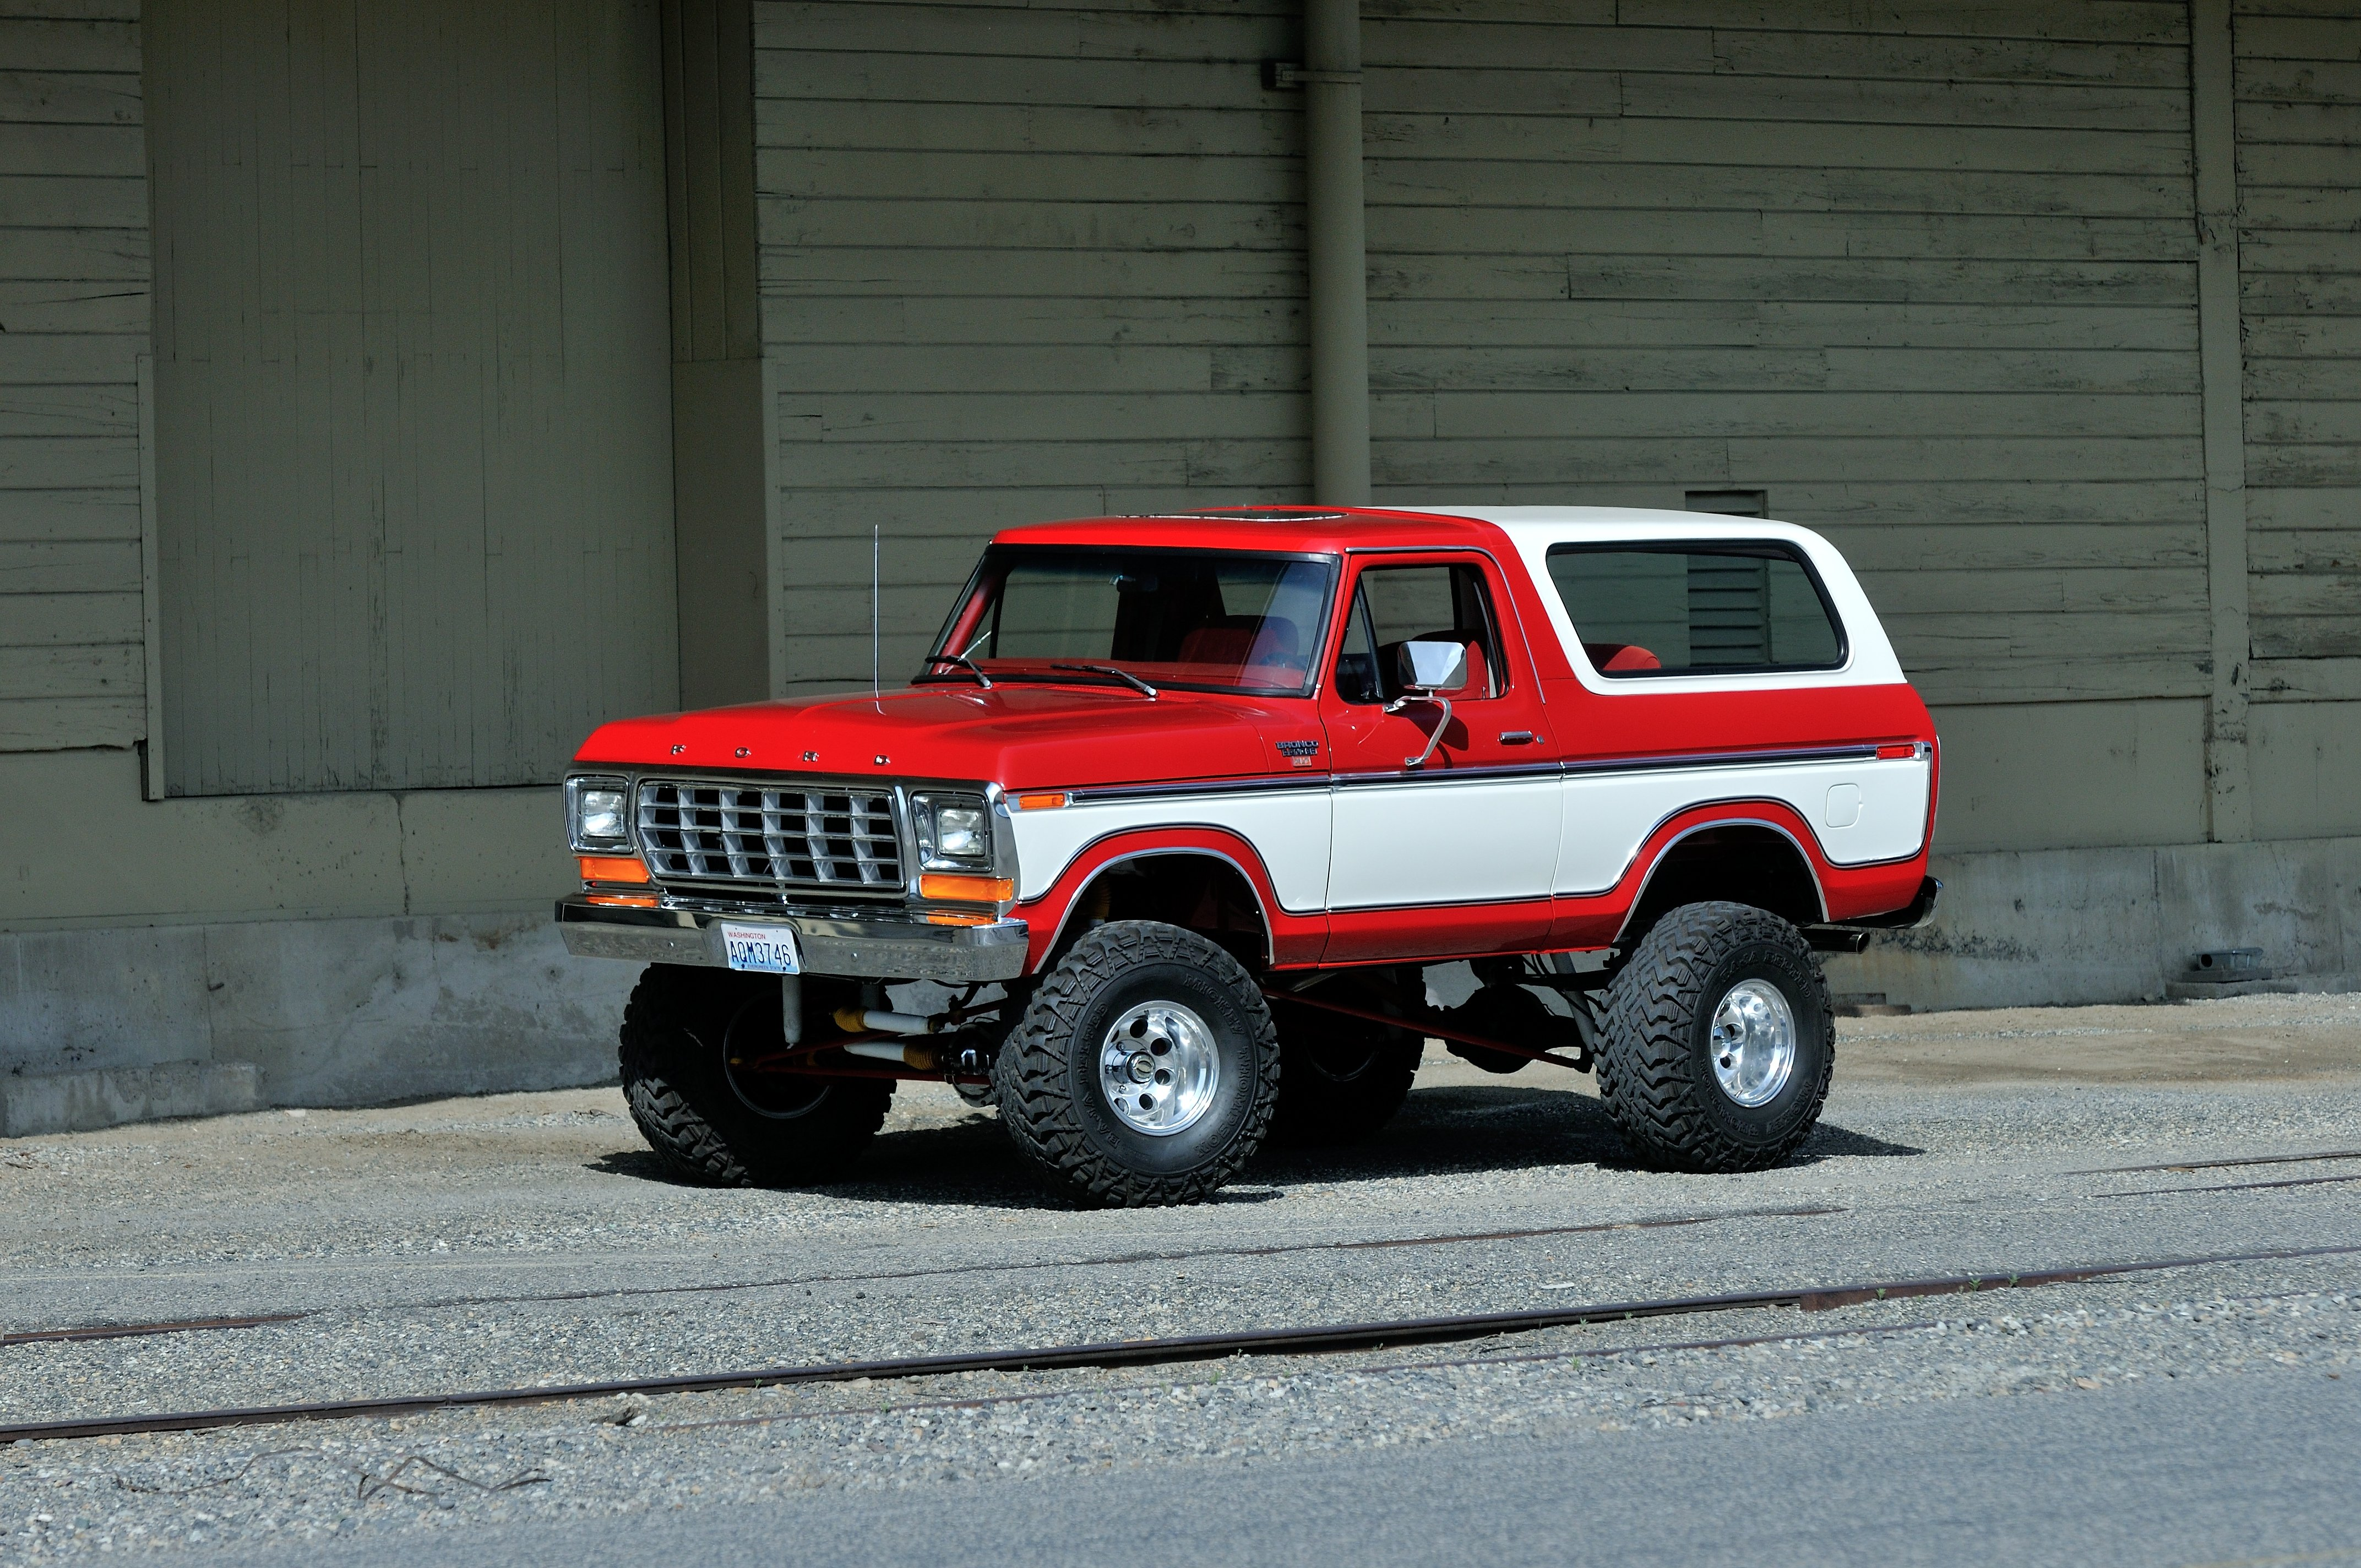 1979 Ford Bronco Off Road Four Wheel Drive USA -01 wallpaper ...